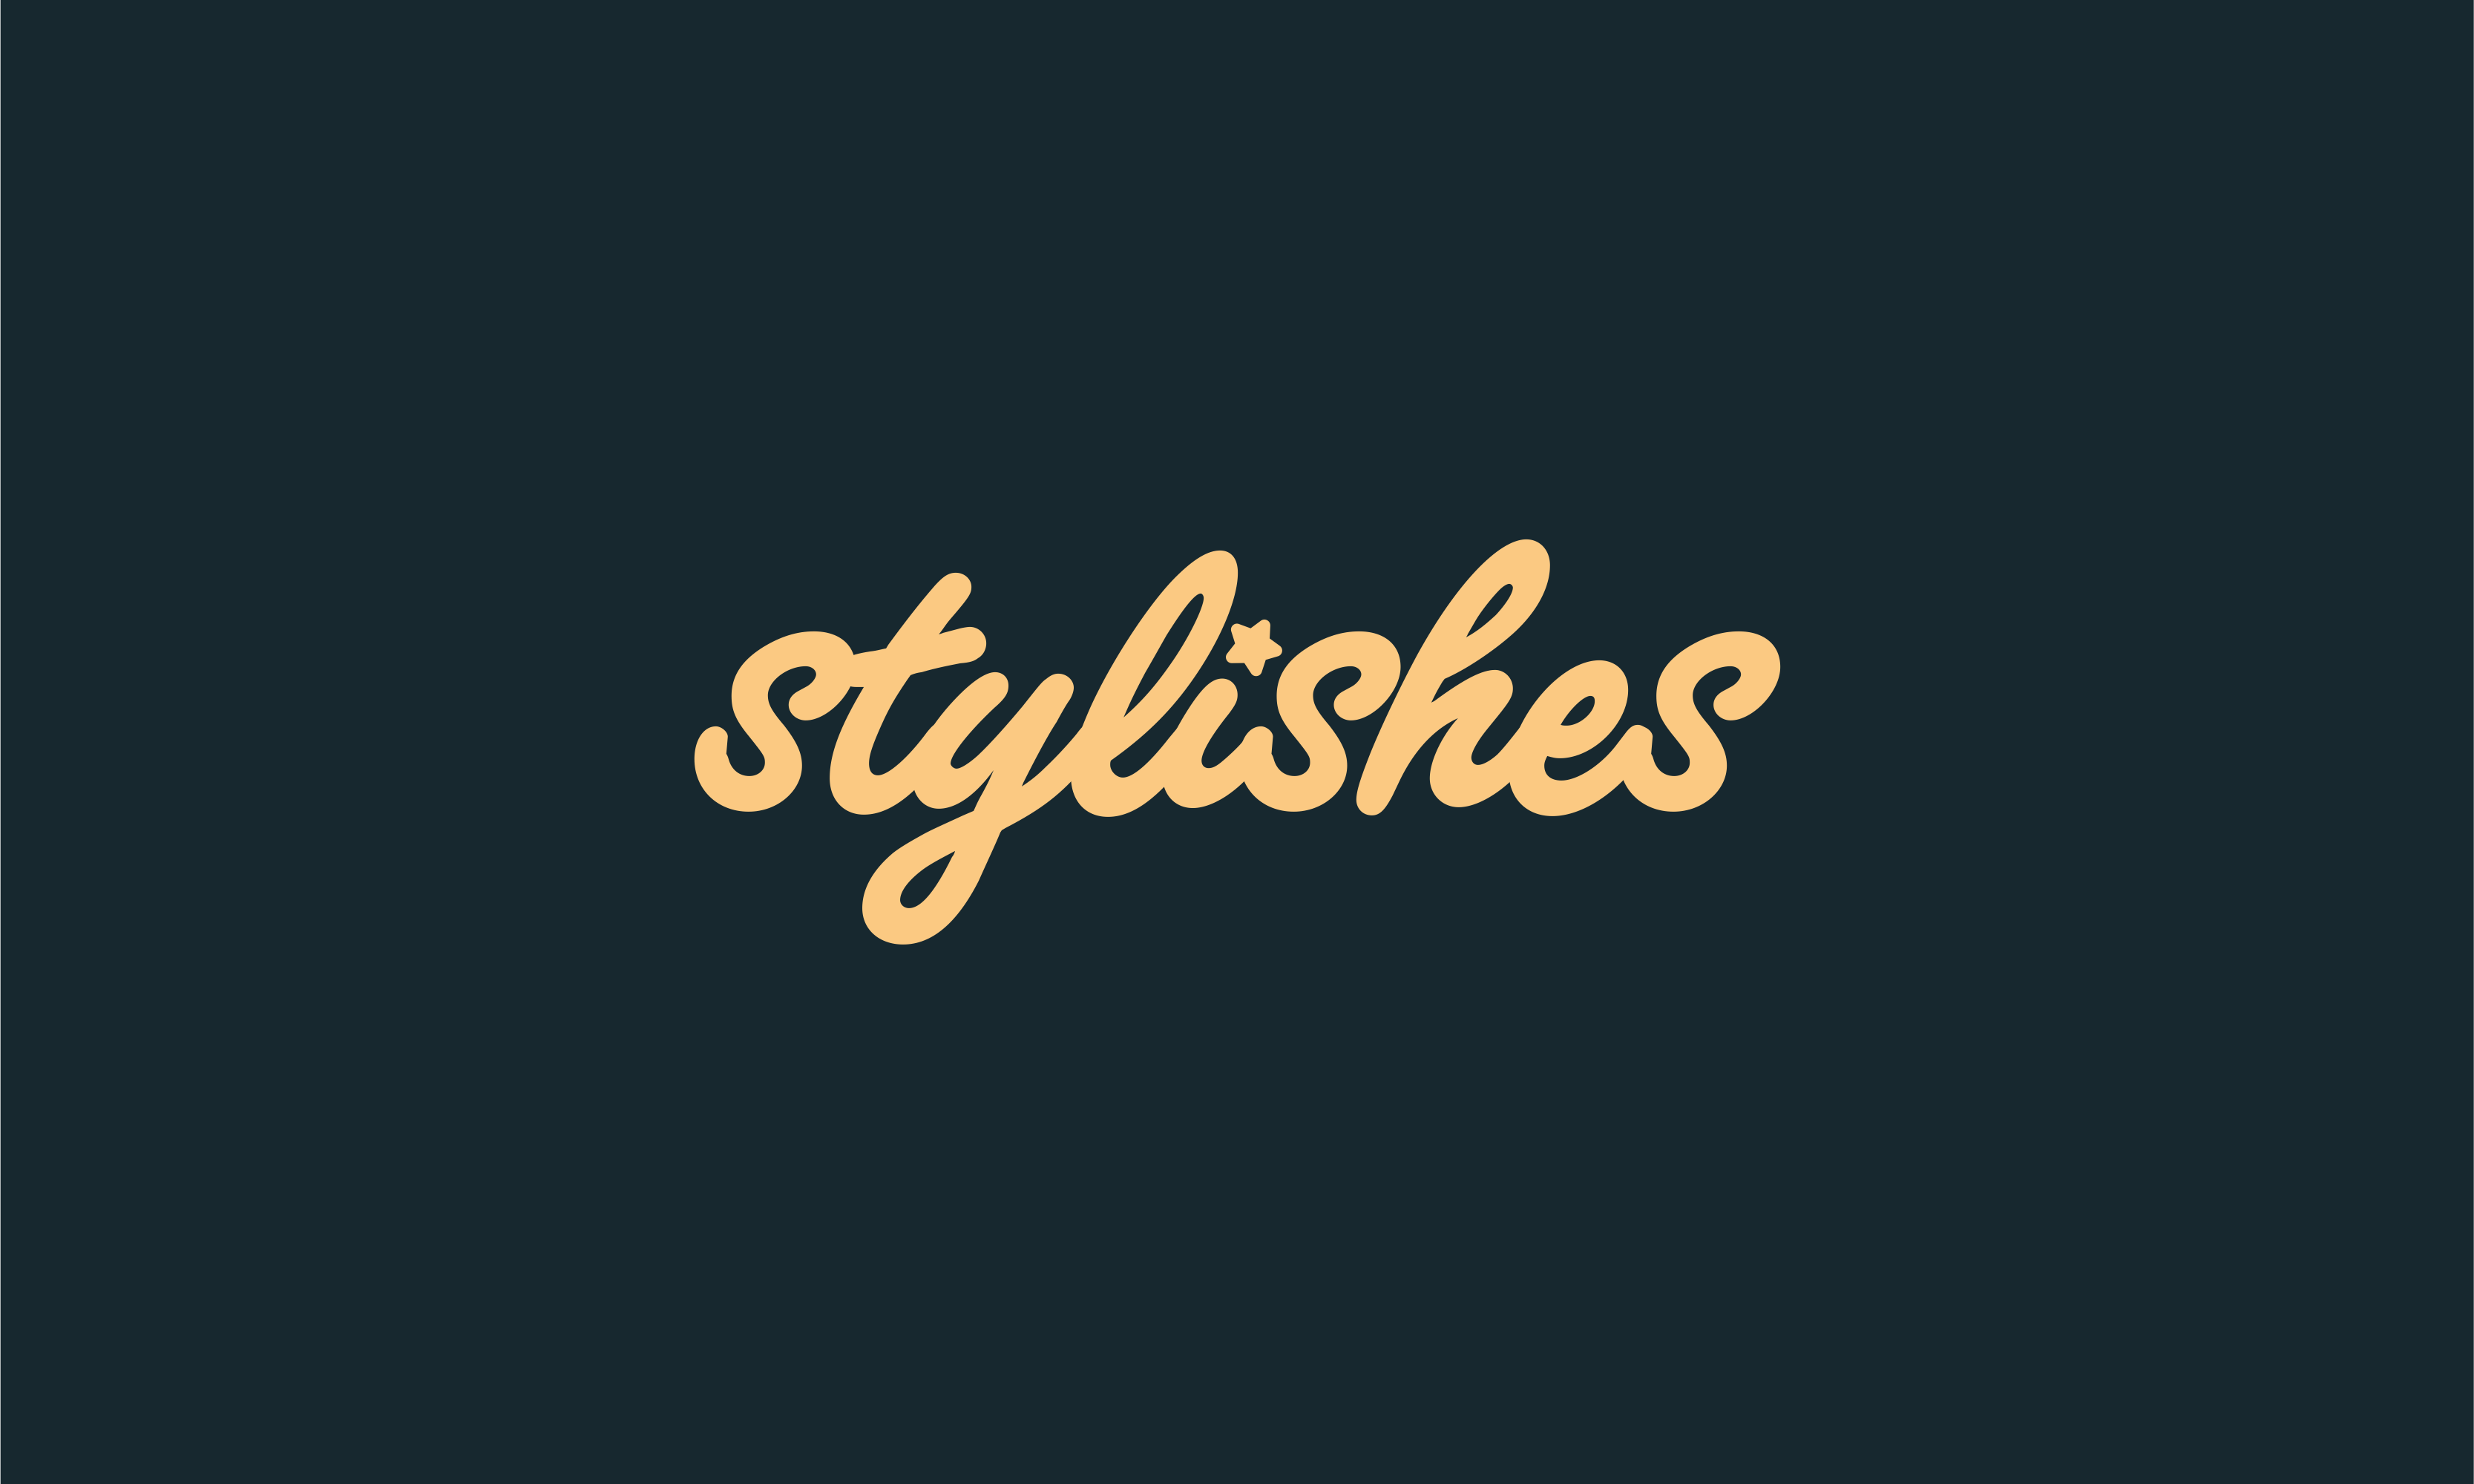 stylishes logo